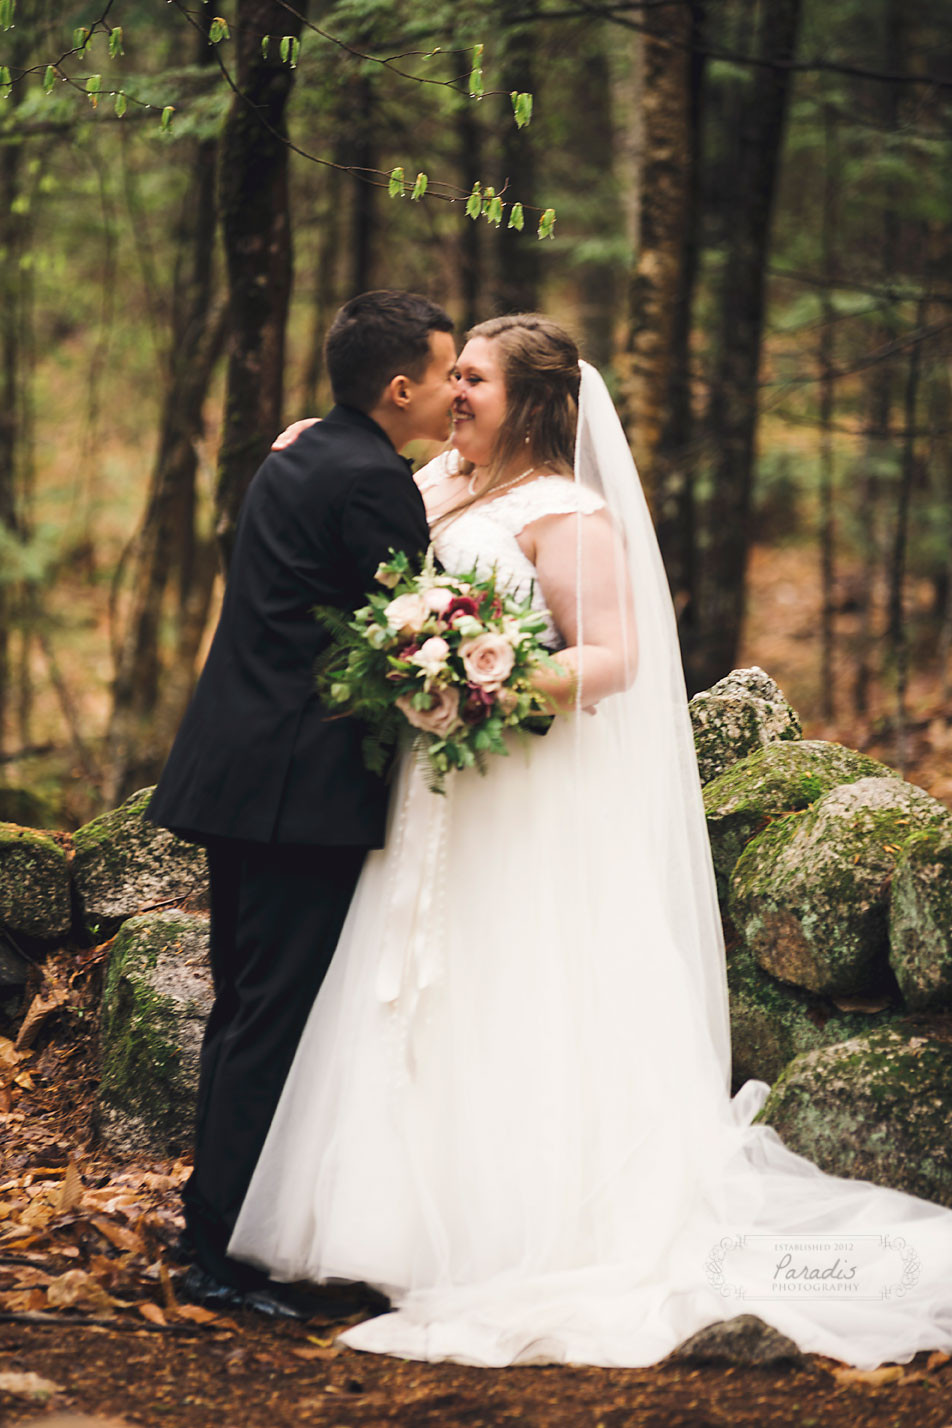 Sweet moment with bride and groom at their wedding in the maine woods